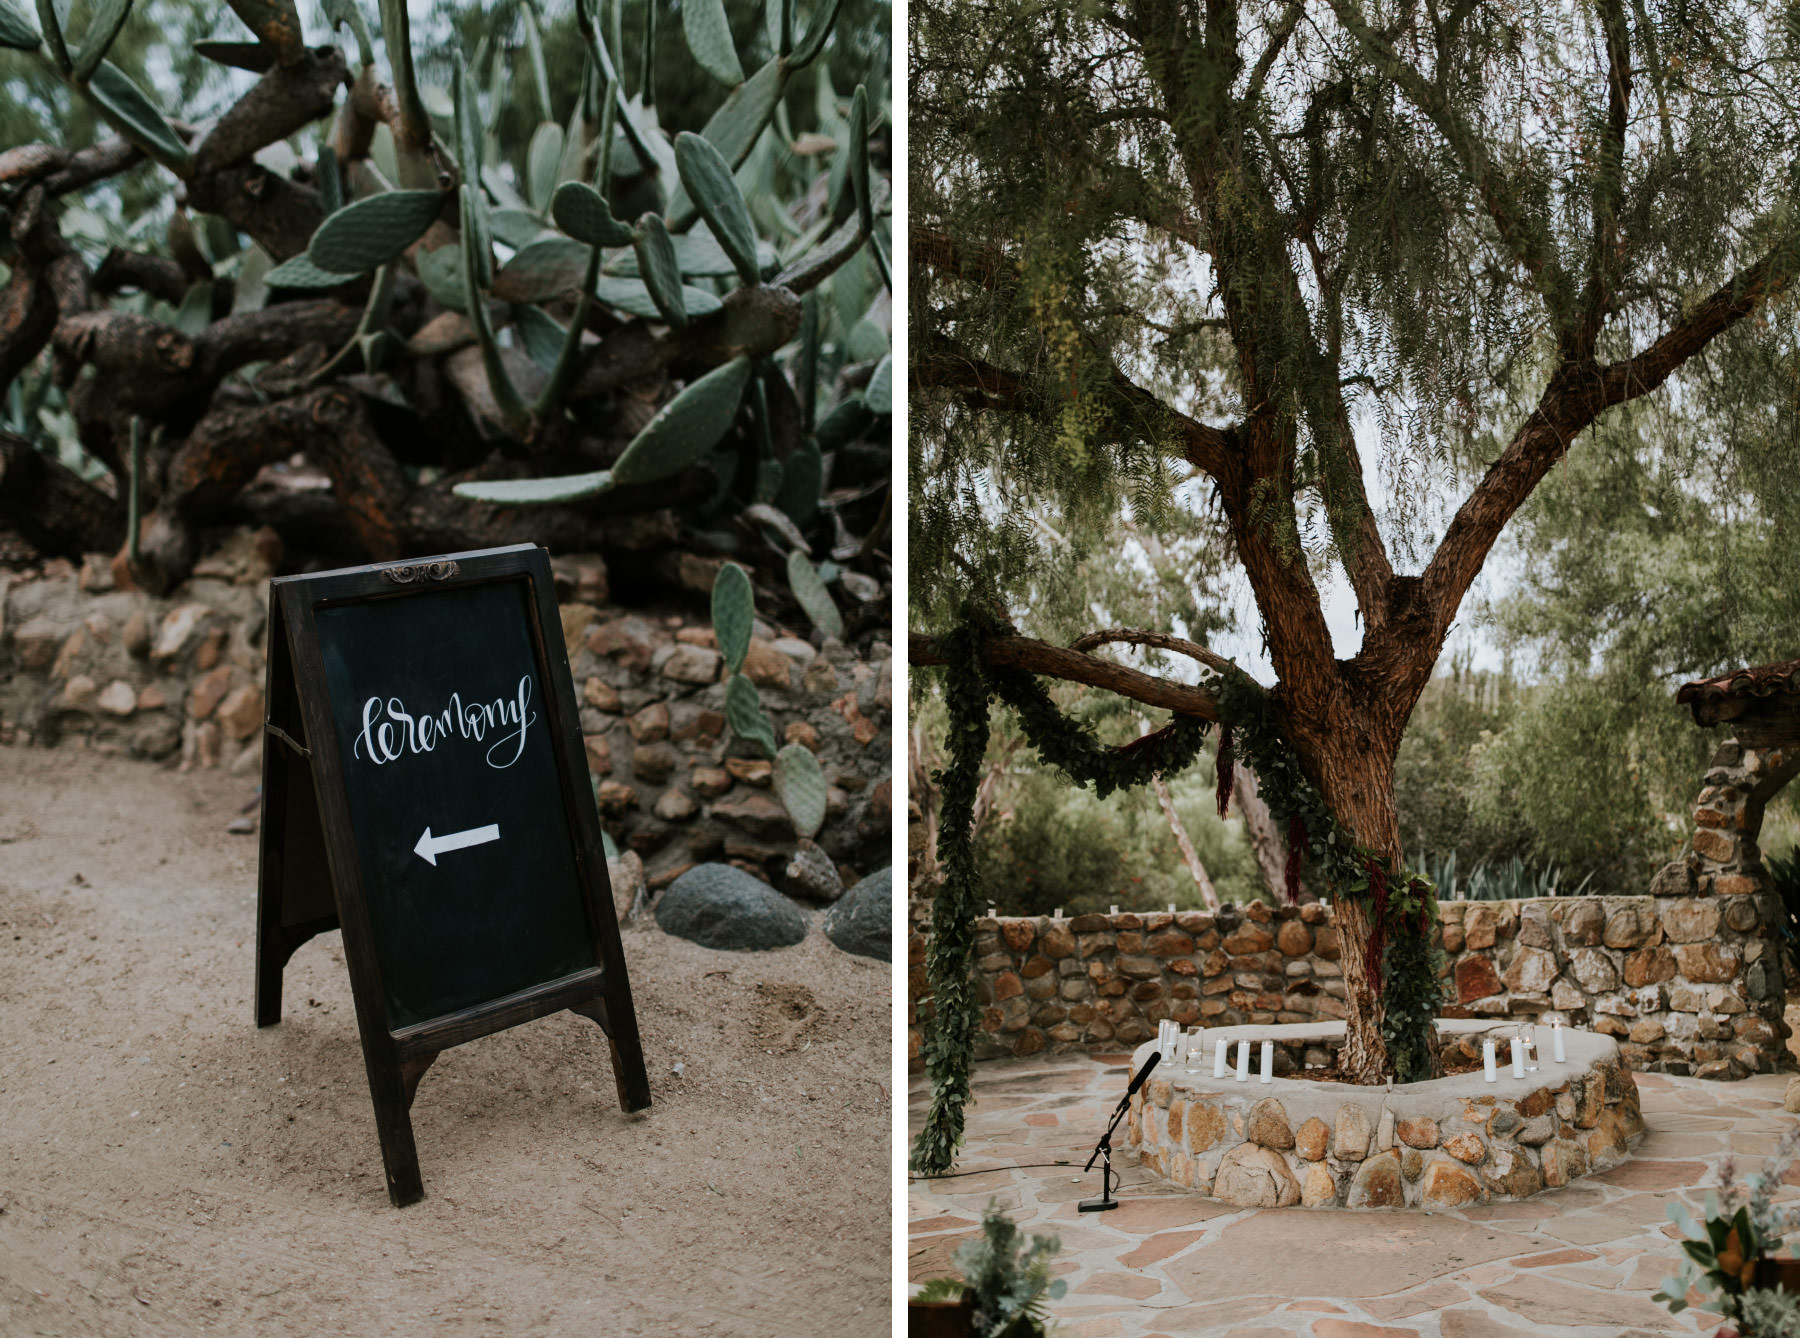 Ceremony sign and courtyard at Leo Carrillo Ranch